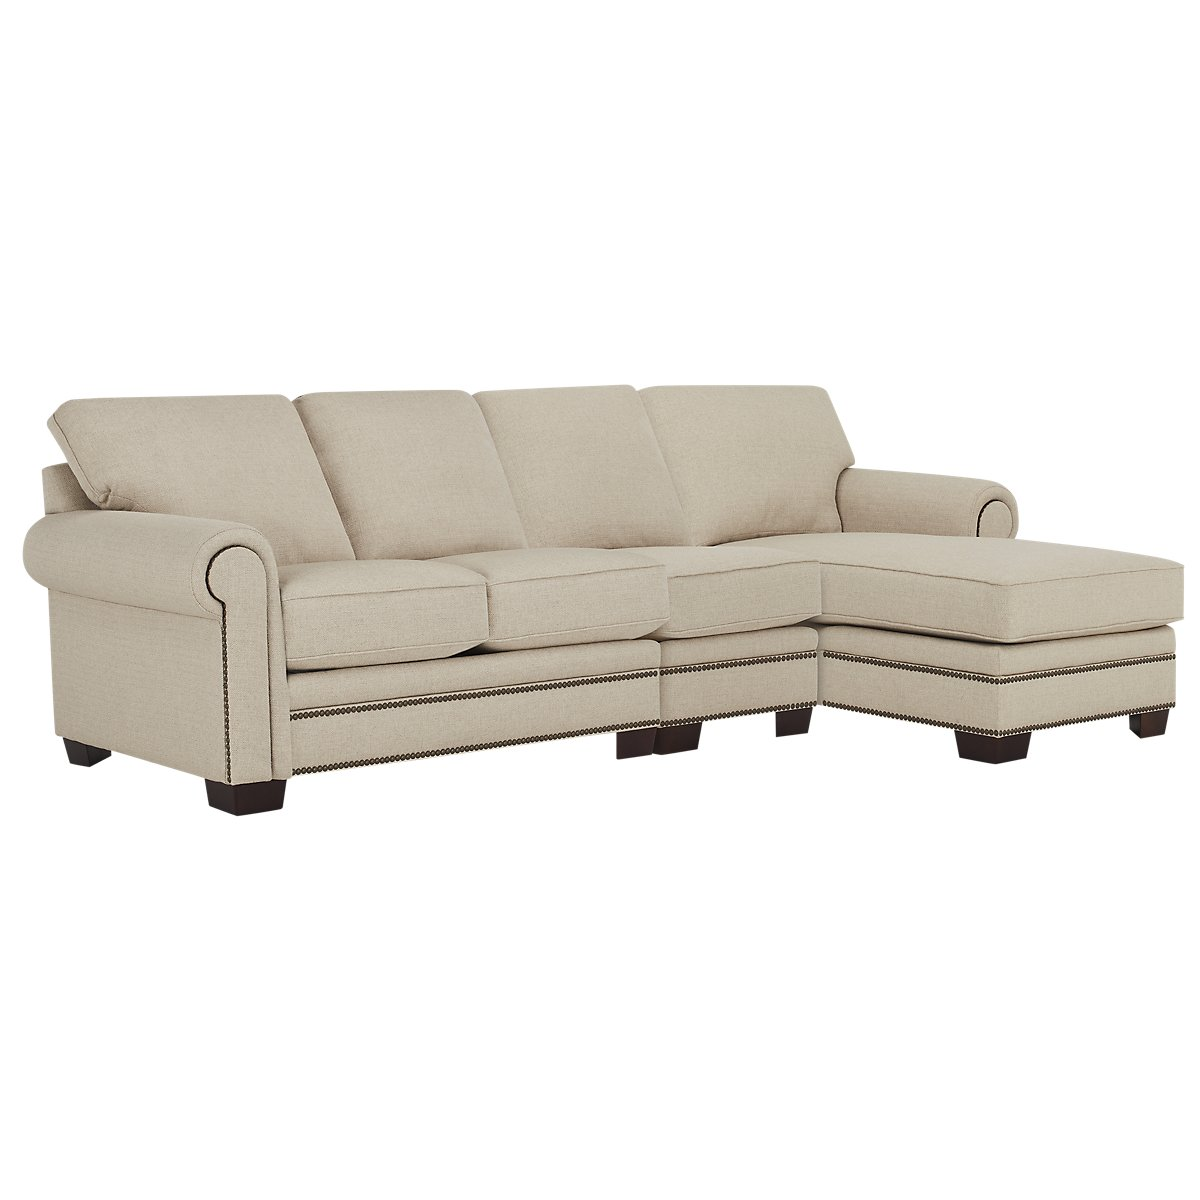 City furniture foster khaki fabric small right chaise for Chaise kaki